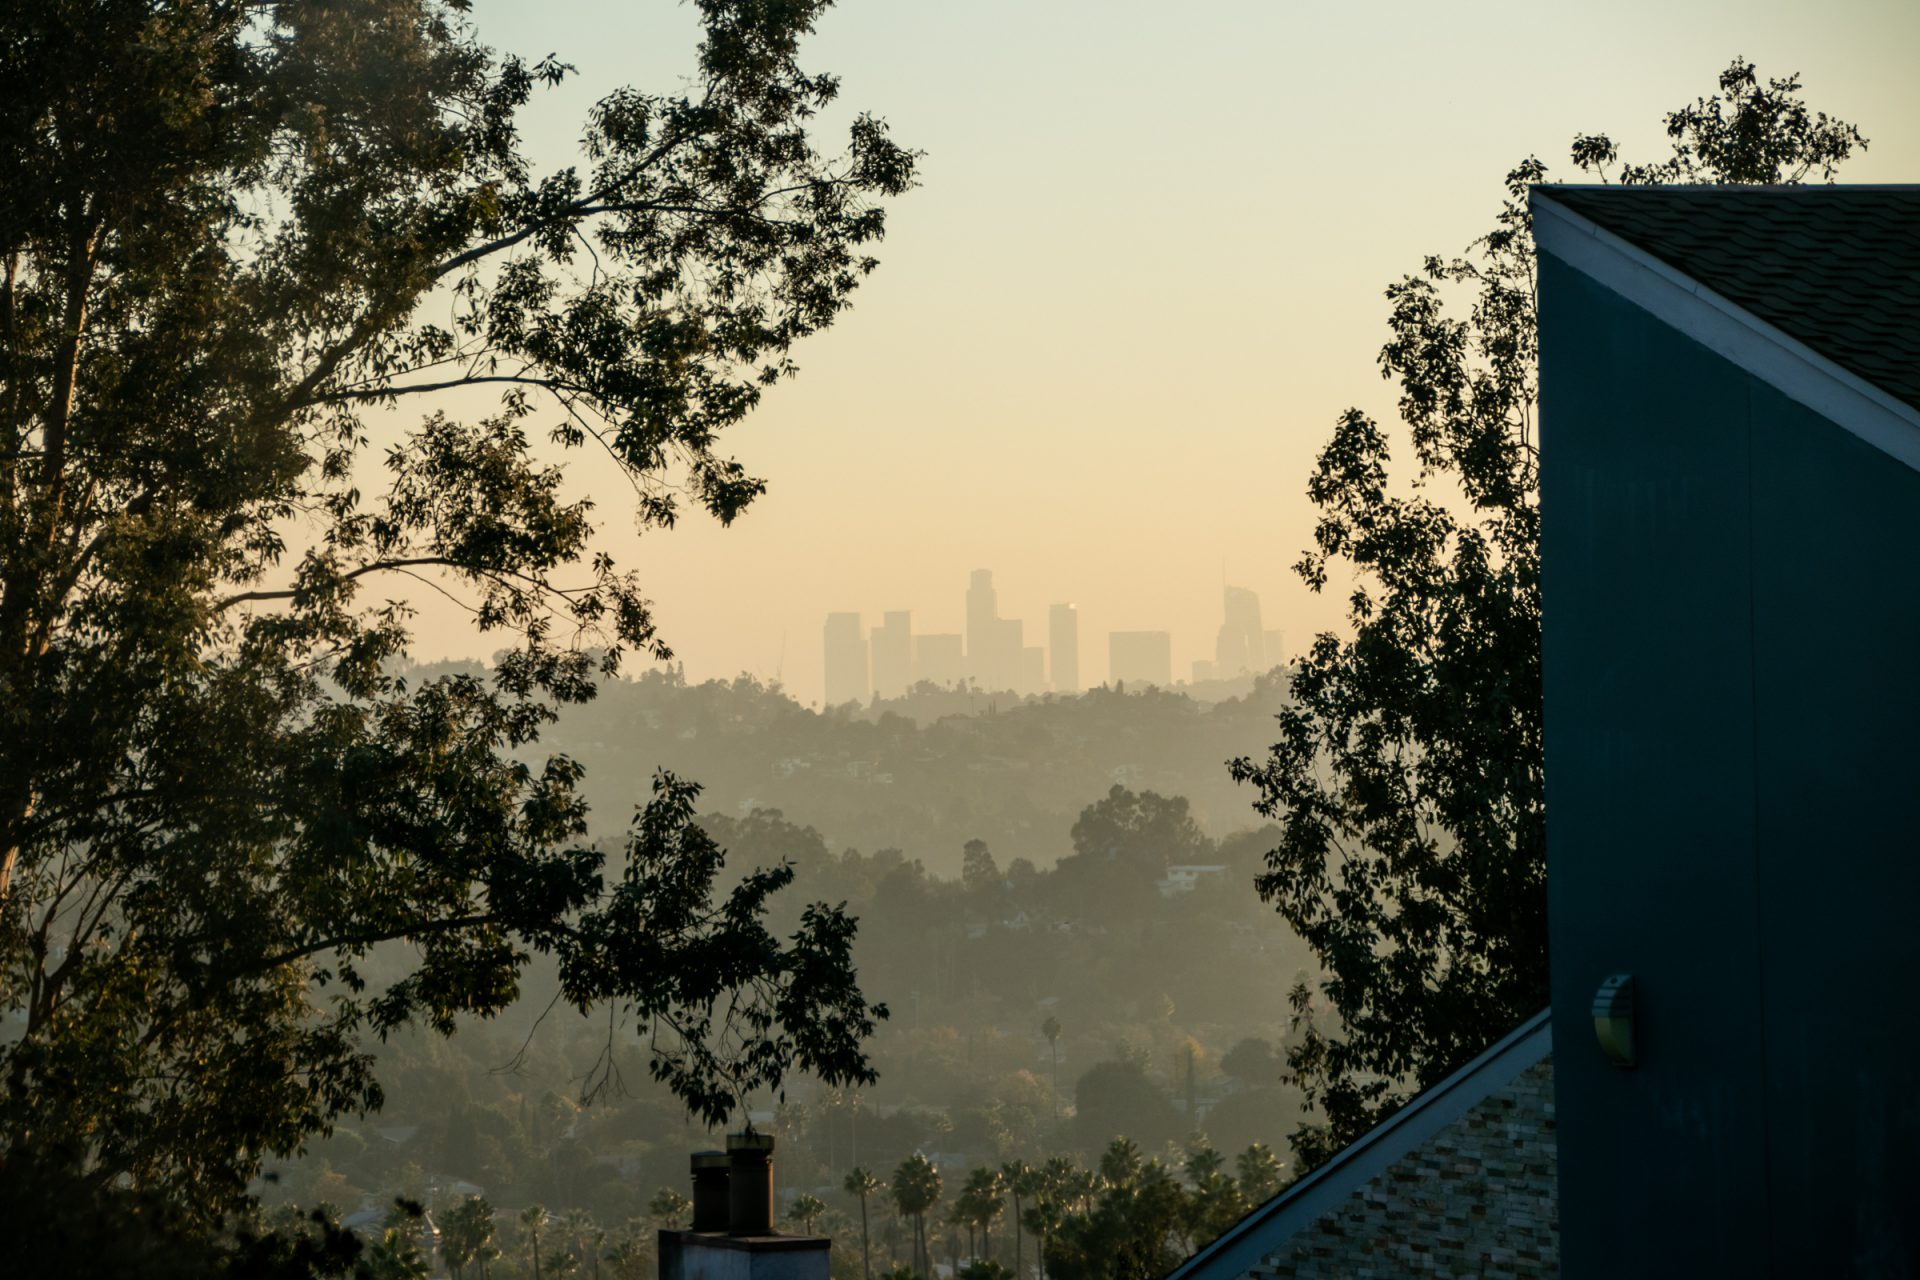 City Skyline Beyond Trees And Building Roofs